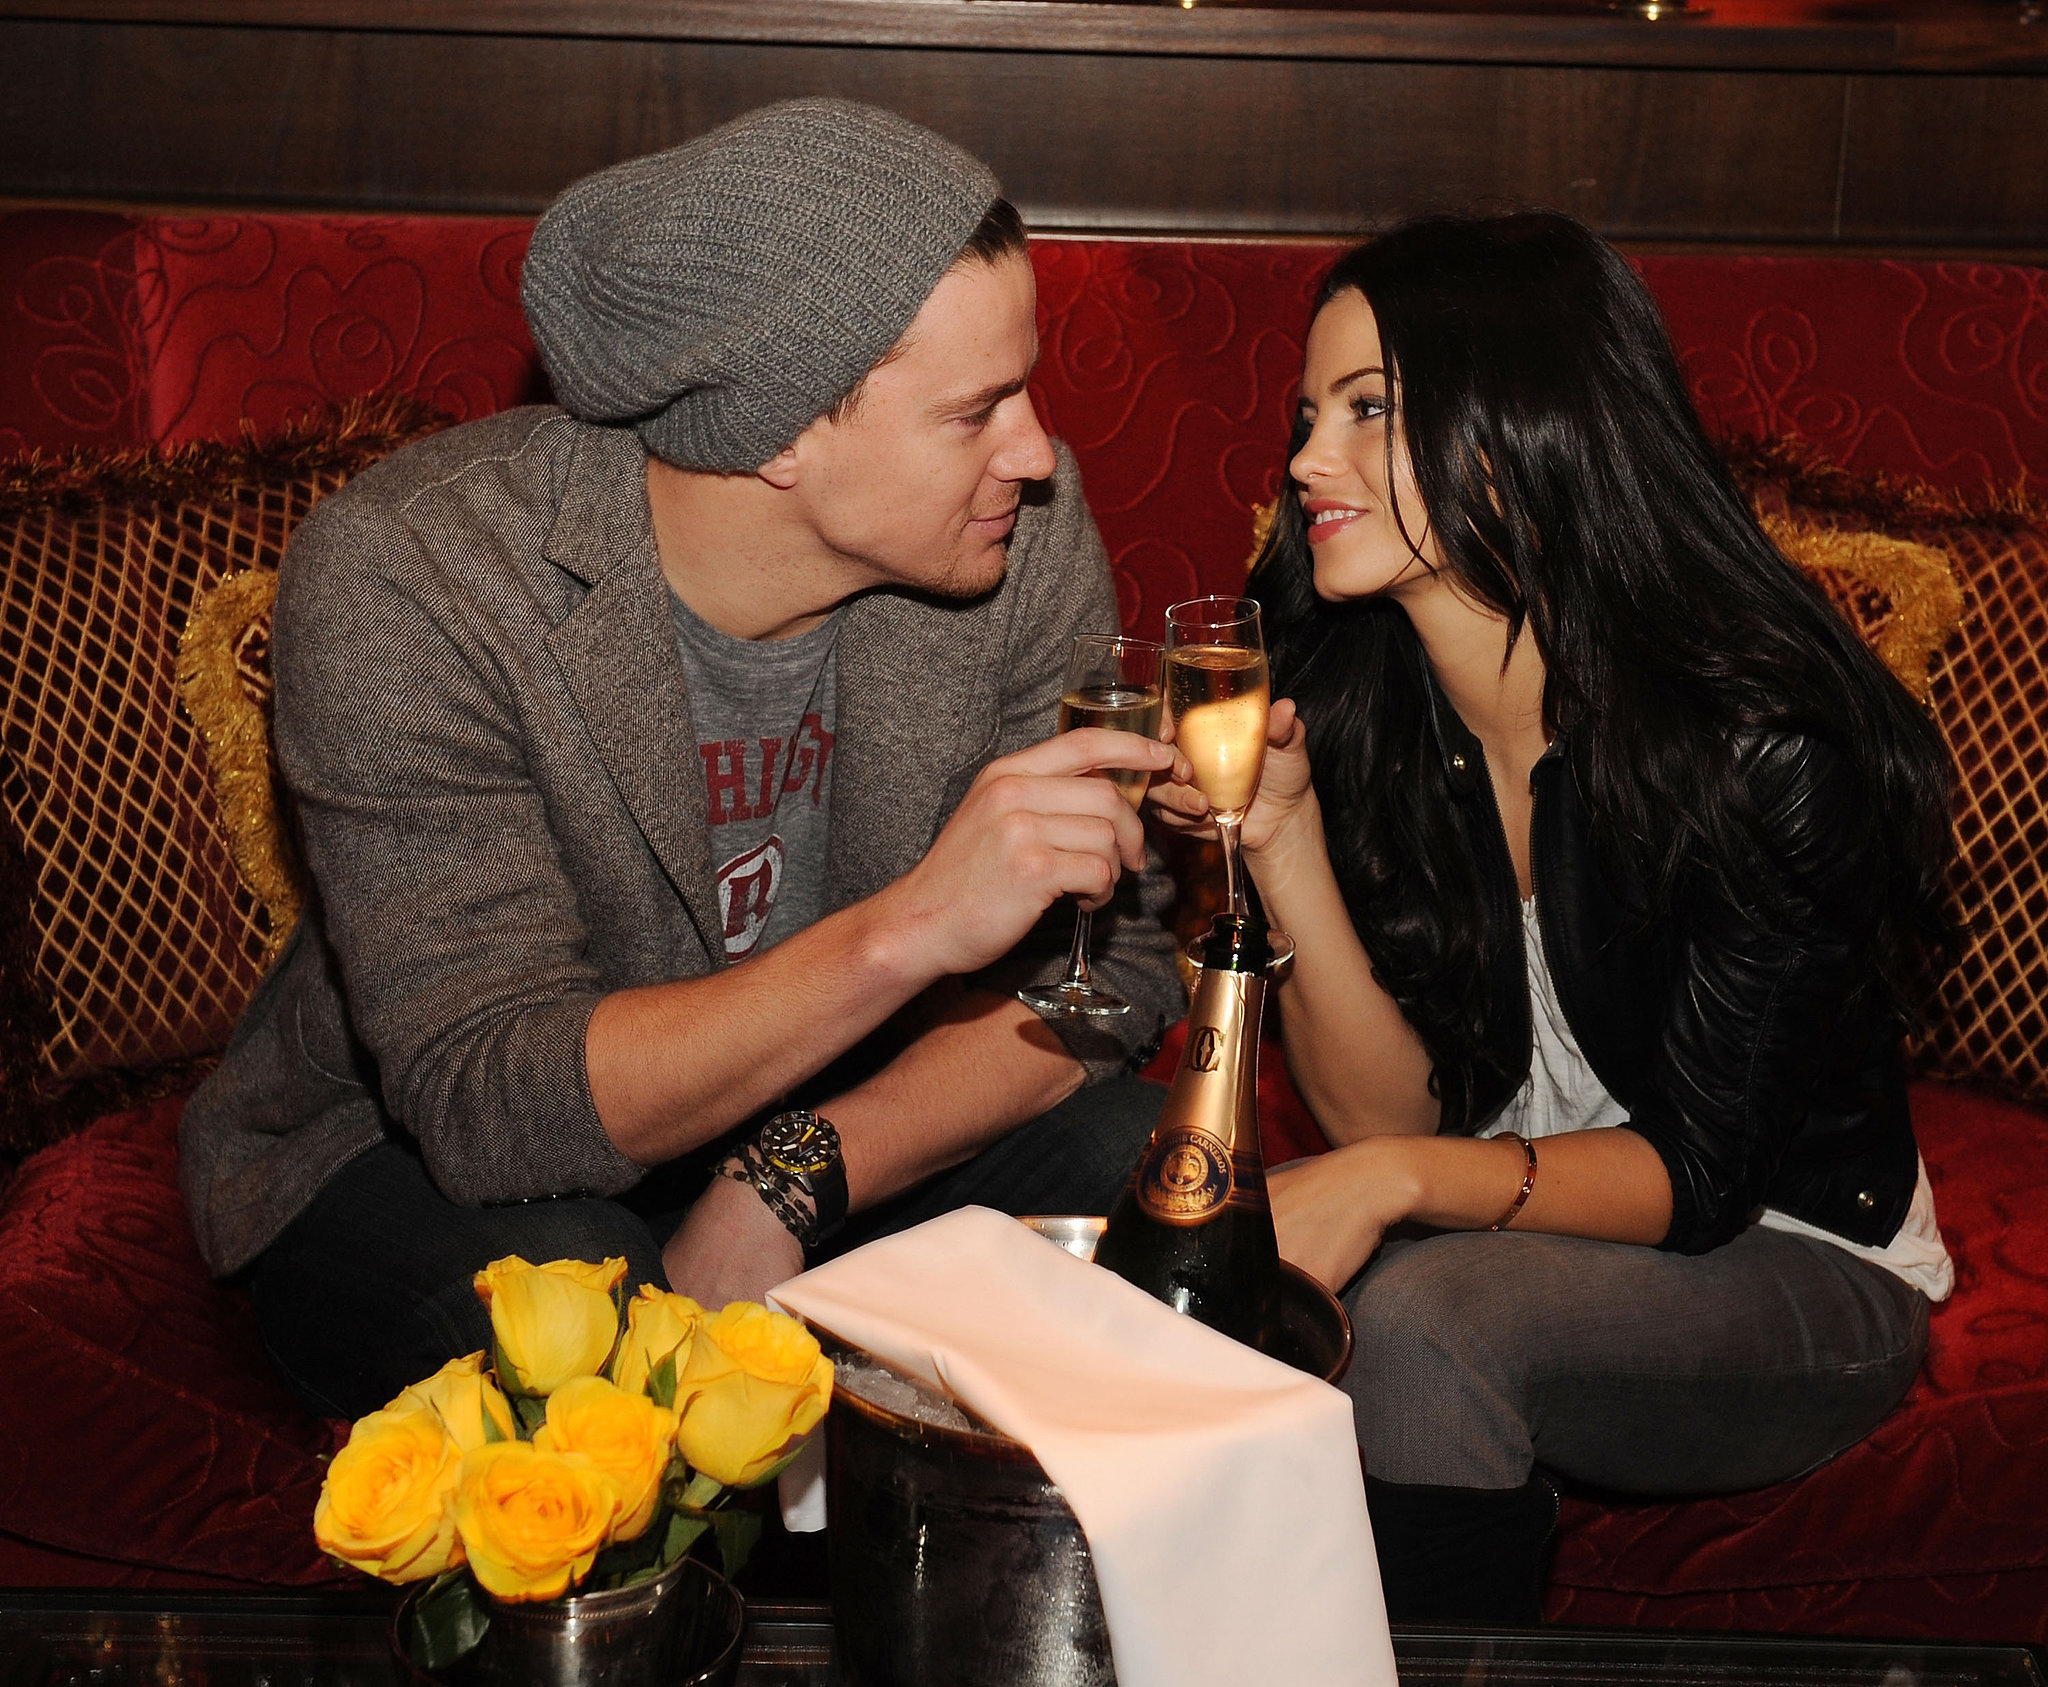 Channing and Jenna toasted with Champagne during a February 2010 visit to Las Vegas.